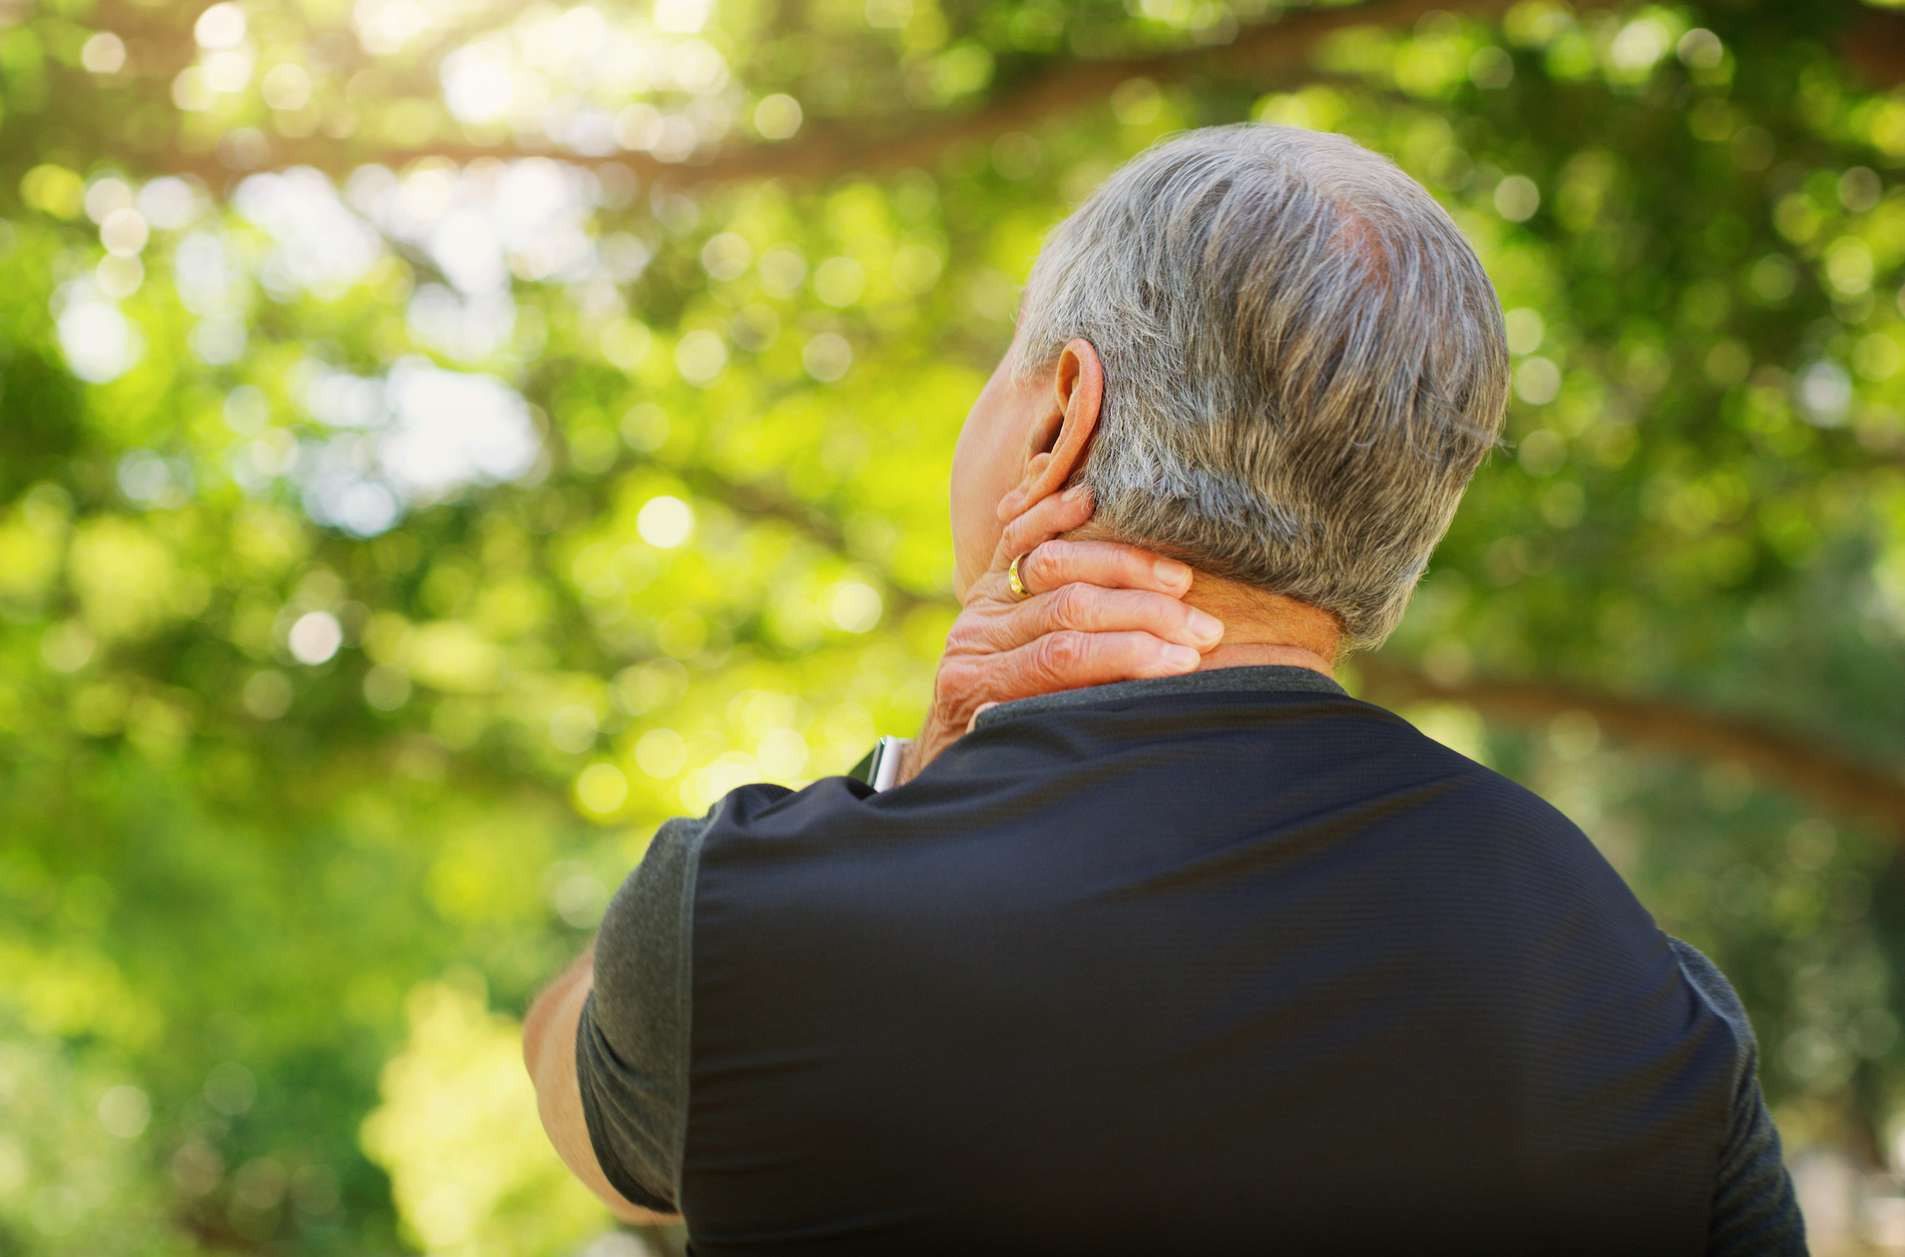 Man in park with neck pain turned away touching his neck